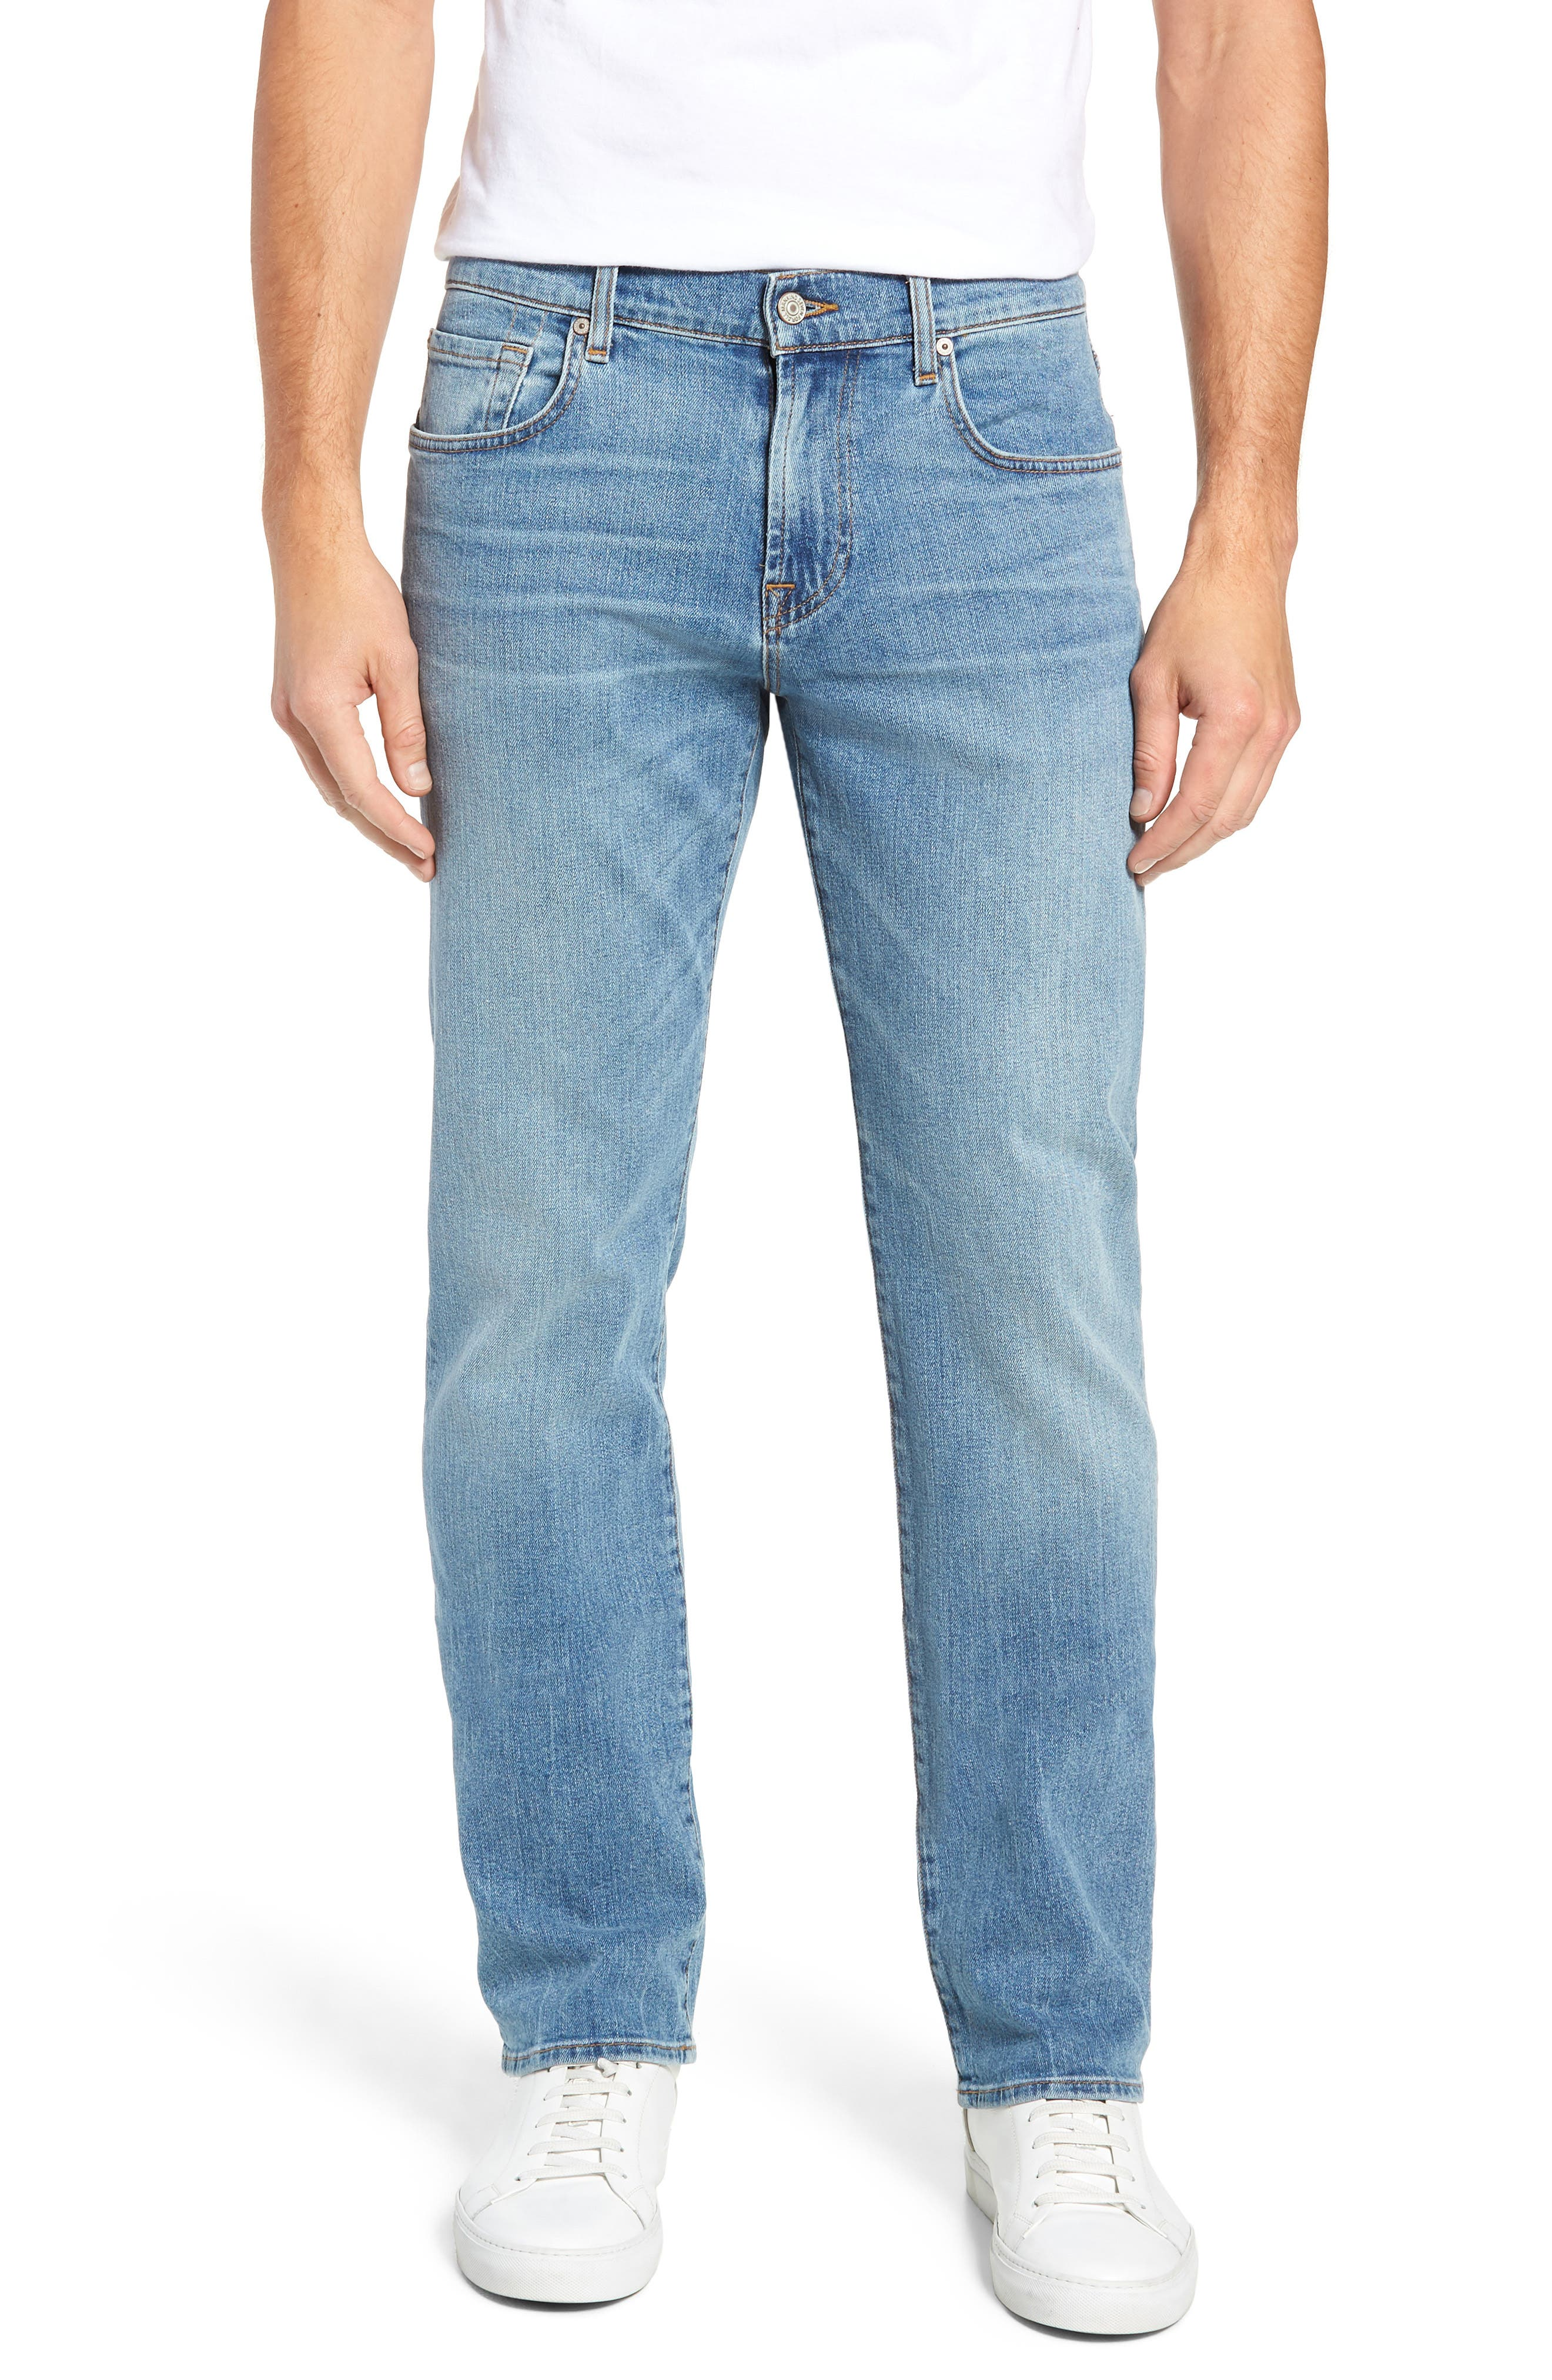 Austyn Relaxed Fit Jeans,                         Main,                         color, PROSE